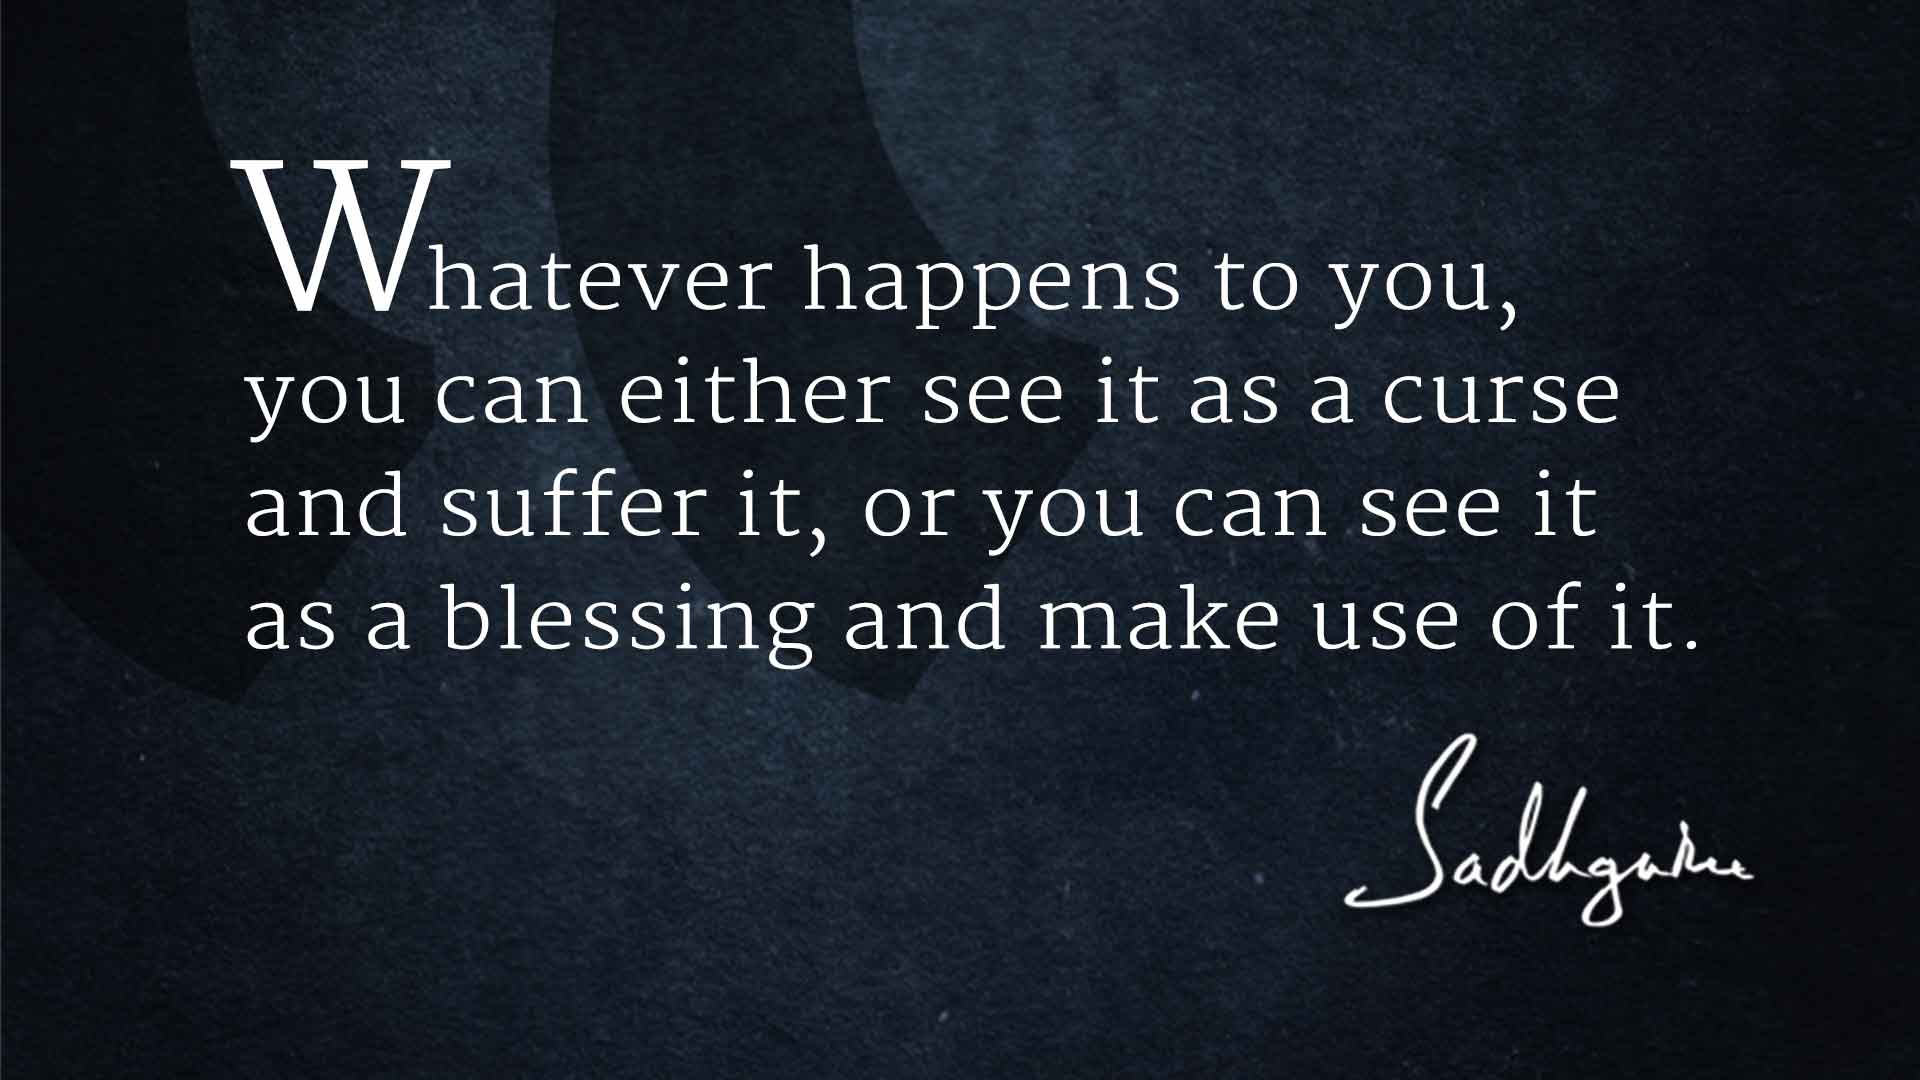 5 Sadhguru Quotes for the New Year - The Isha Blog